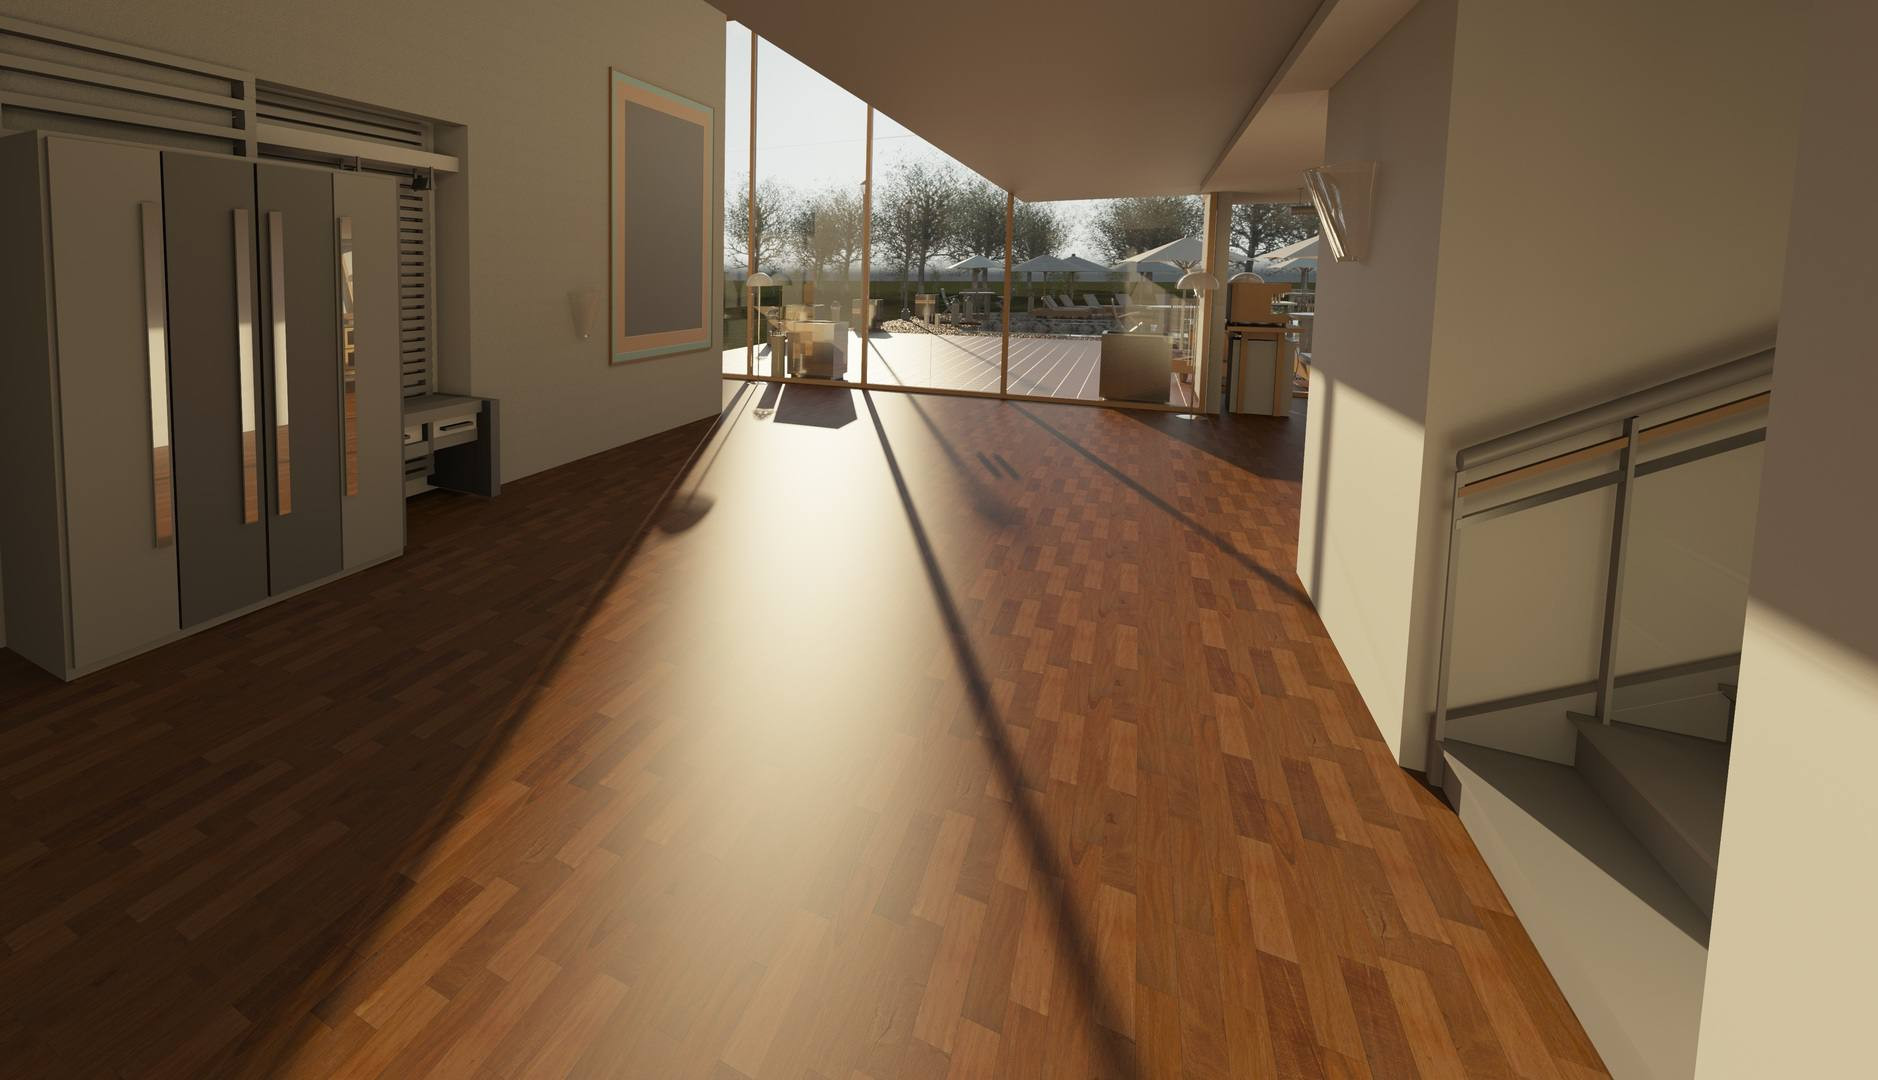 average cost to get hardwood floors installed of common flooring types currently used in renovation and building within architecture wood house floor interior window 917178 pxhere com 5ba27a2cc9e77c00503b27b9